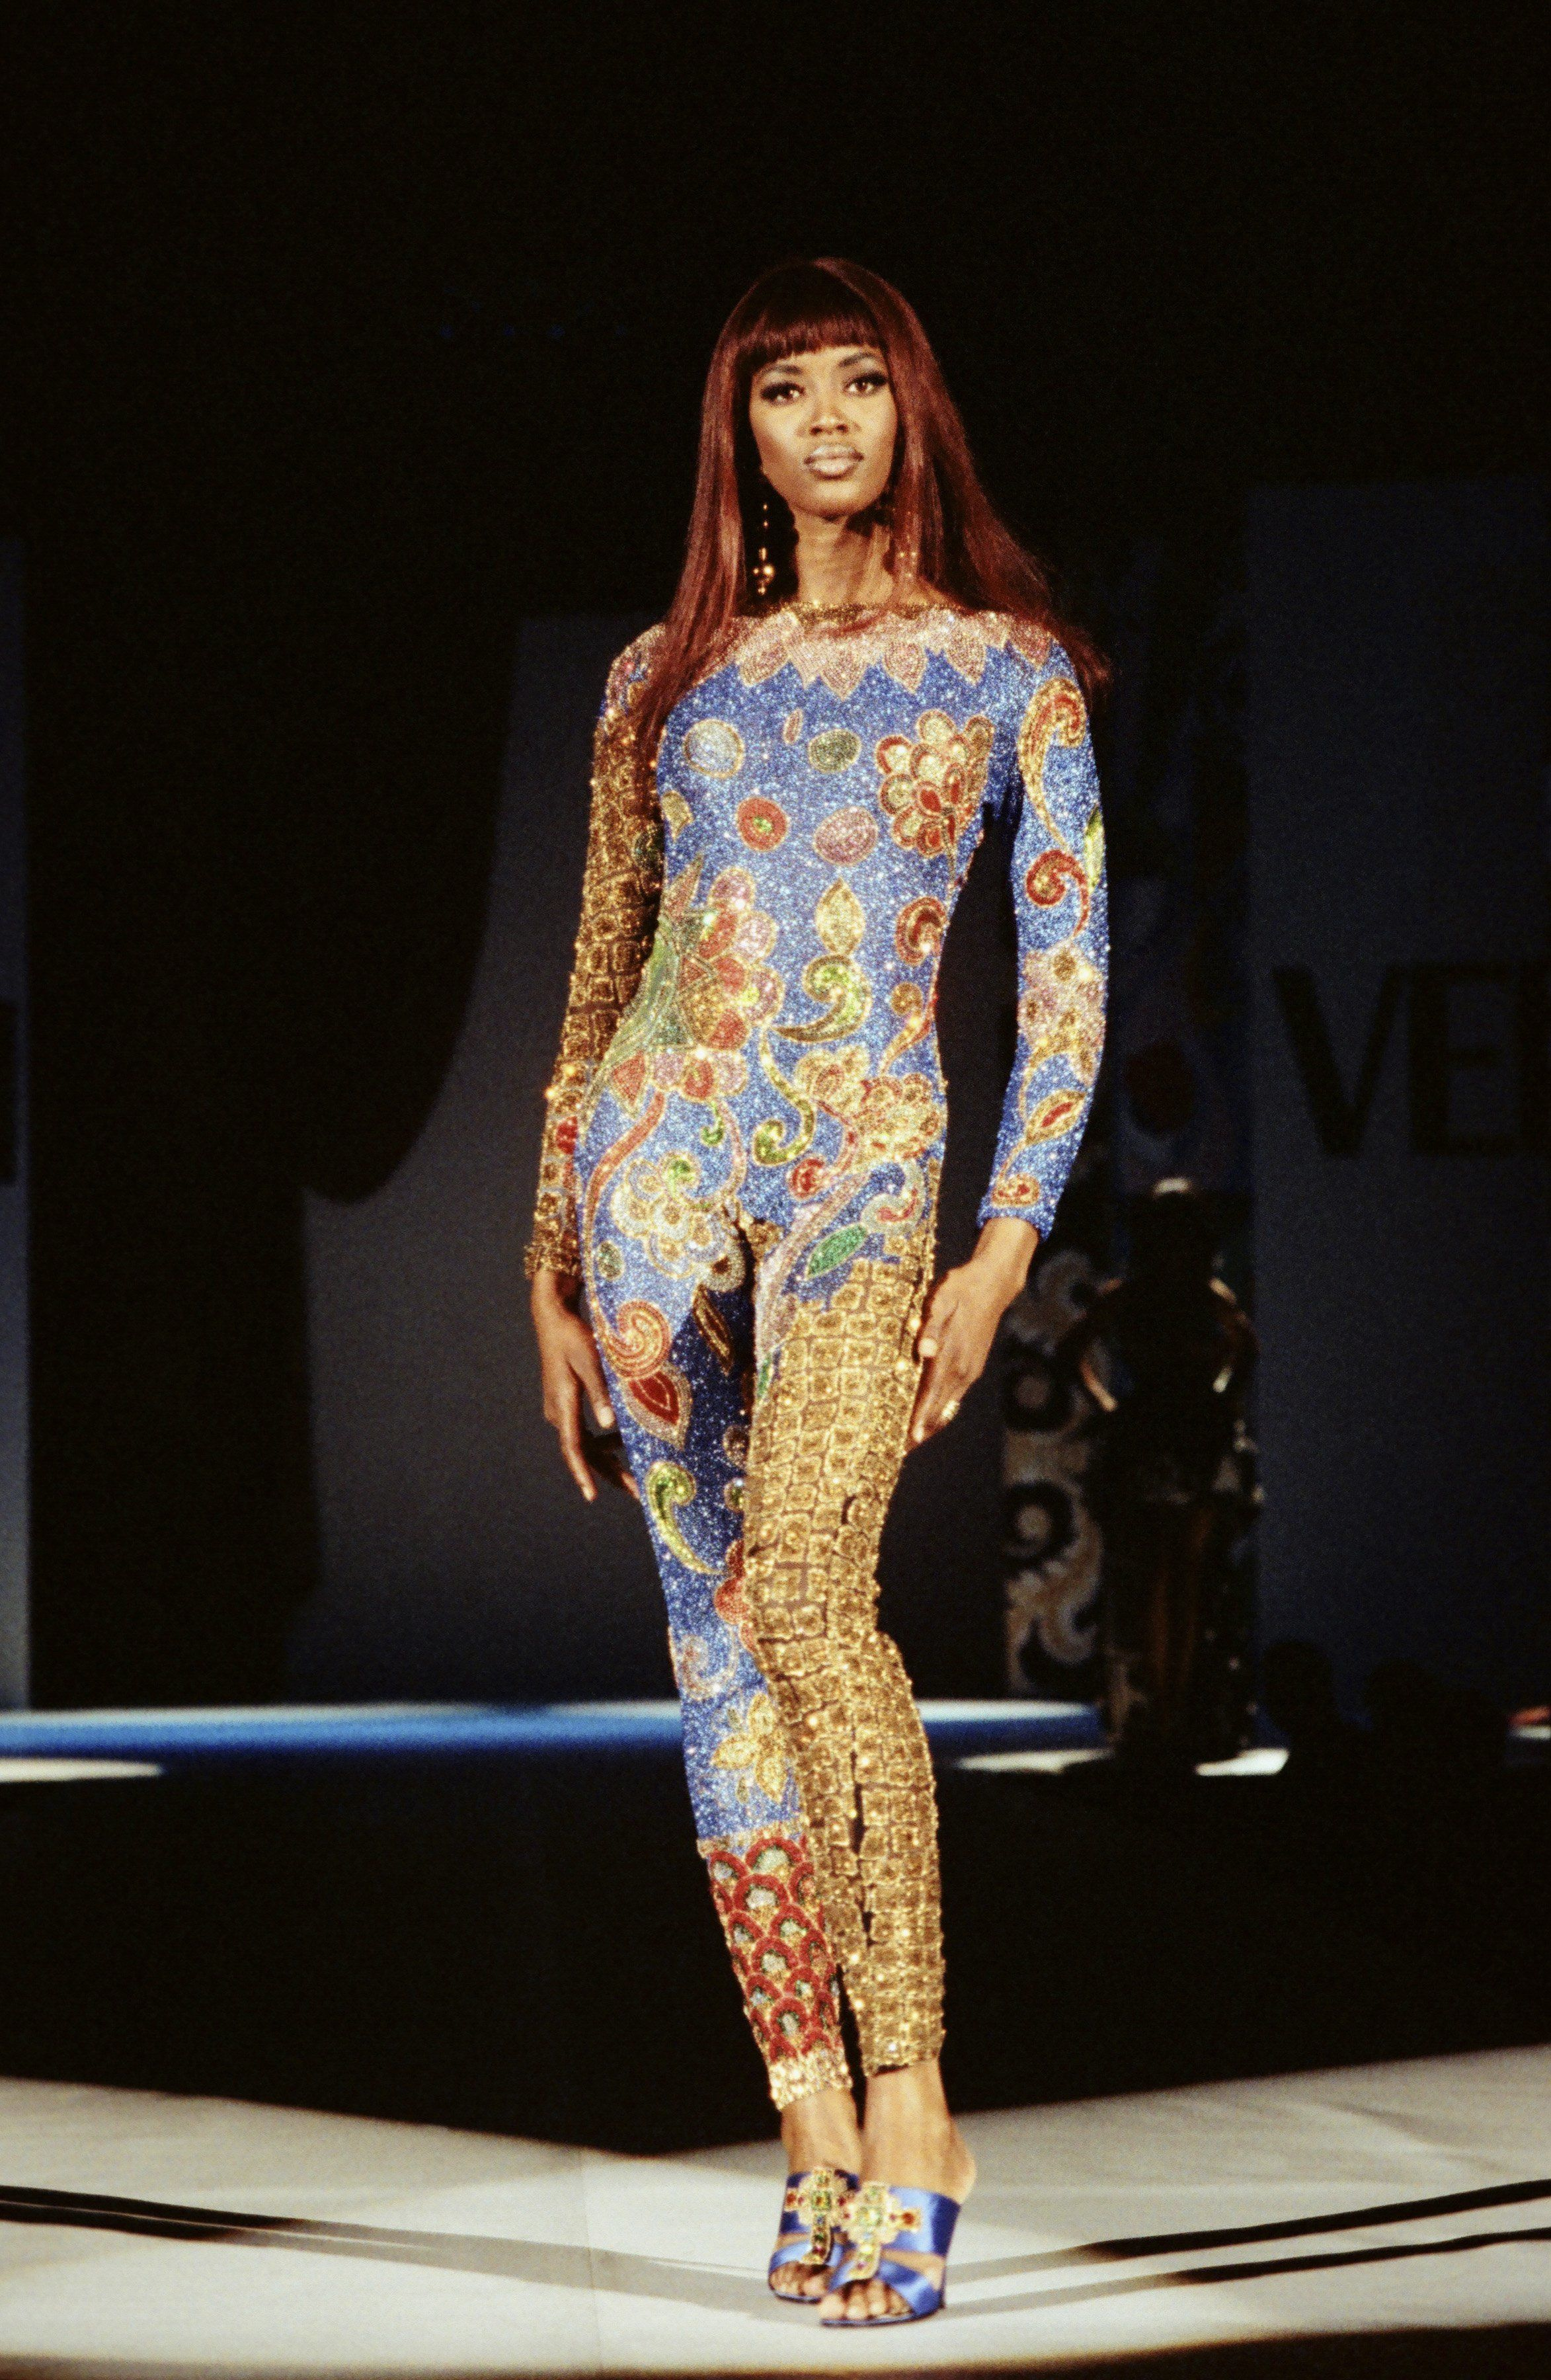 Wearing a design by Gianni Versace in a Los Angeles show.